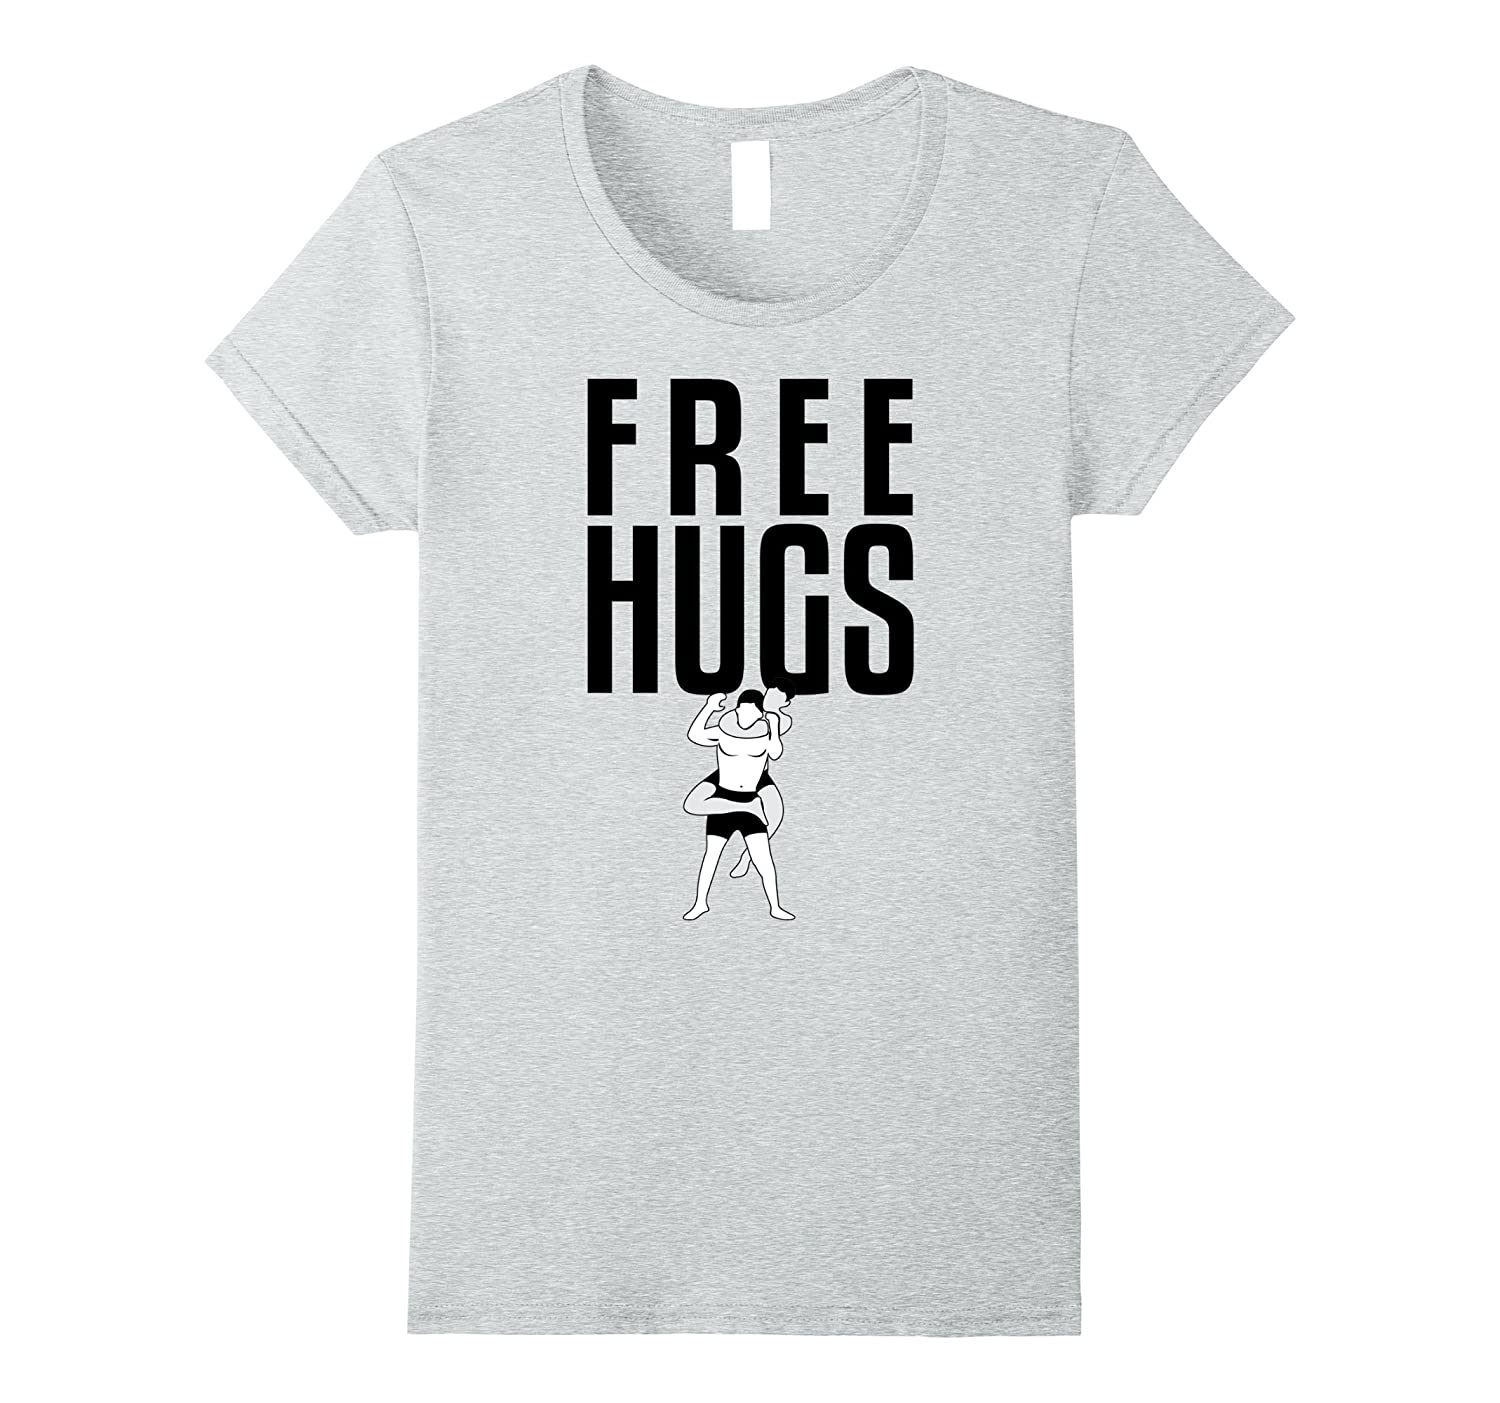 Free Hugs Jiu Jitsu BJJ MMA Grappling Rear Choke T-Shirt